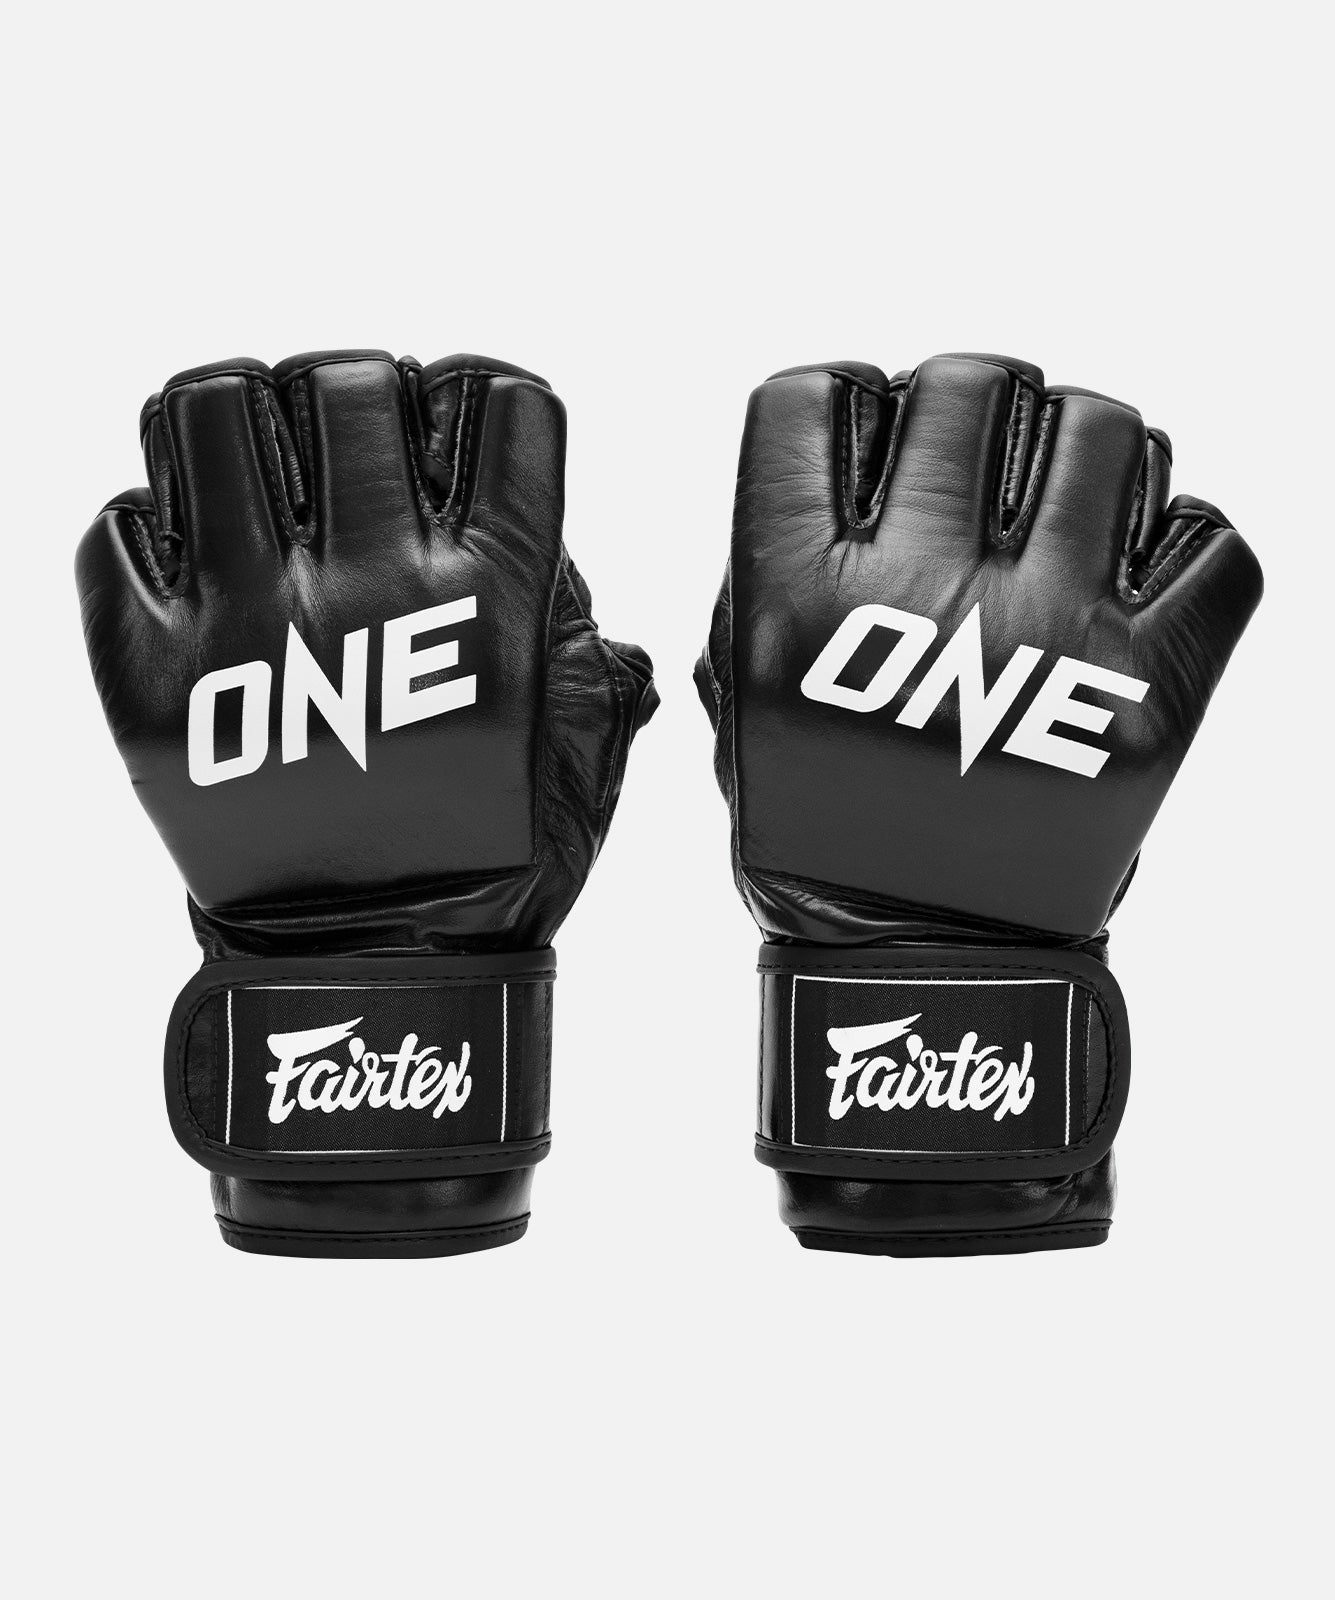 Onex Double End Speed Ball Leather Gloves Boxing Punch Bag Martial Art MMA